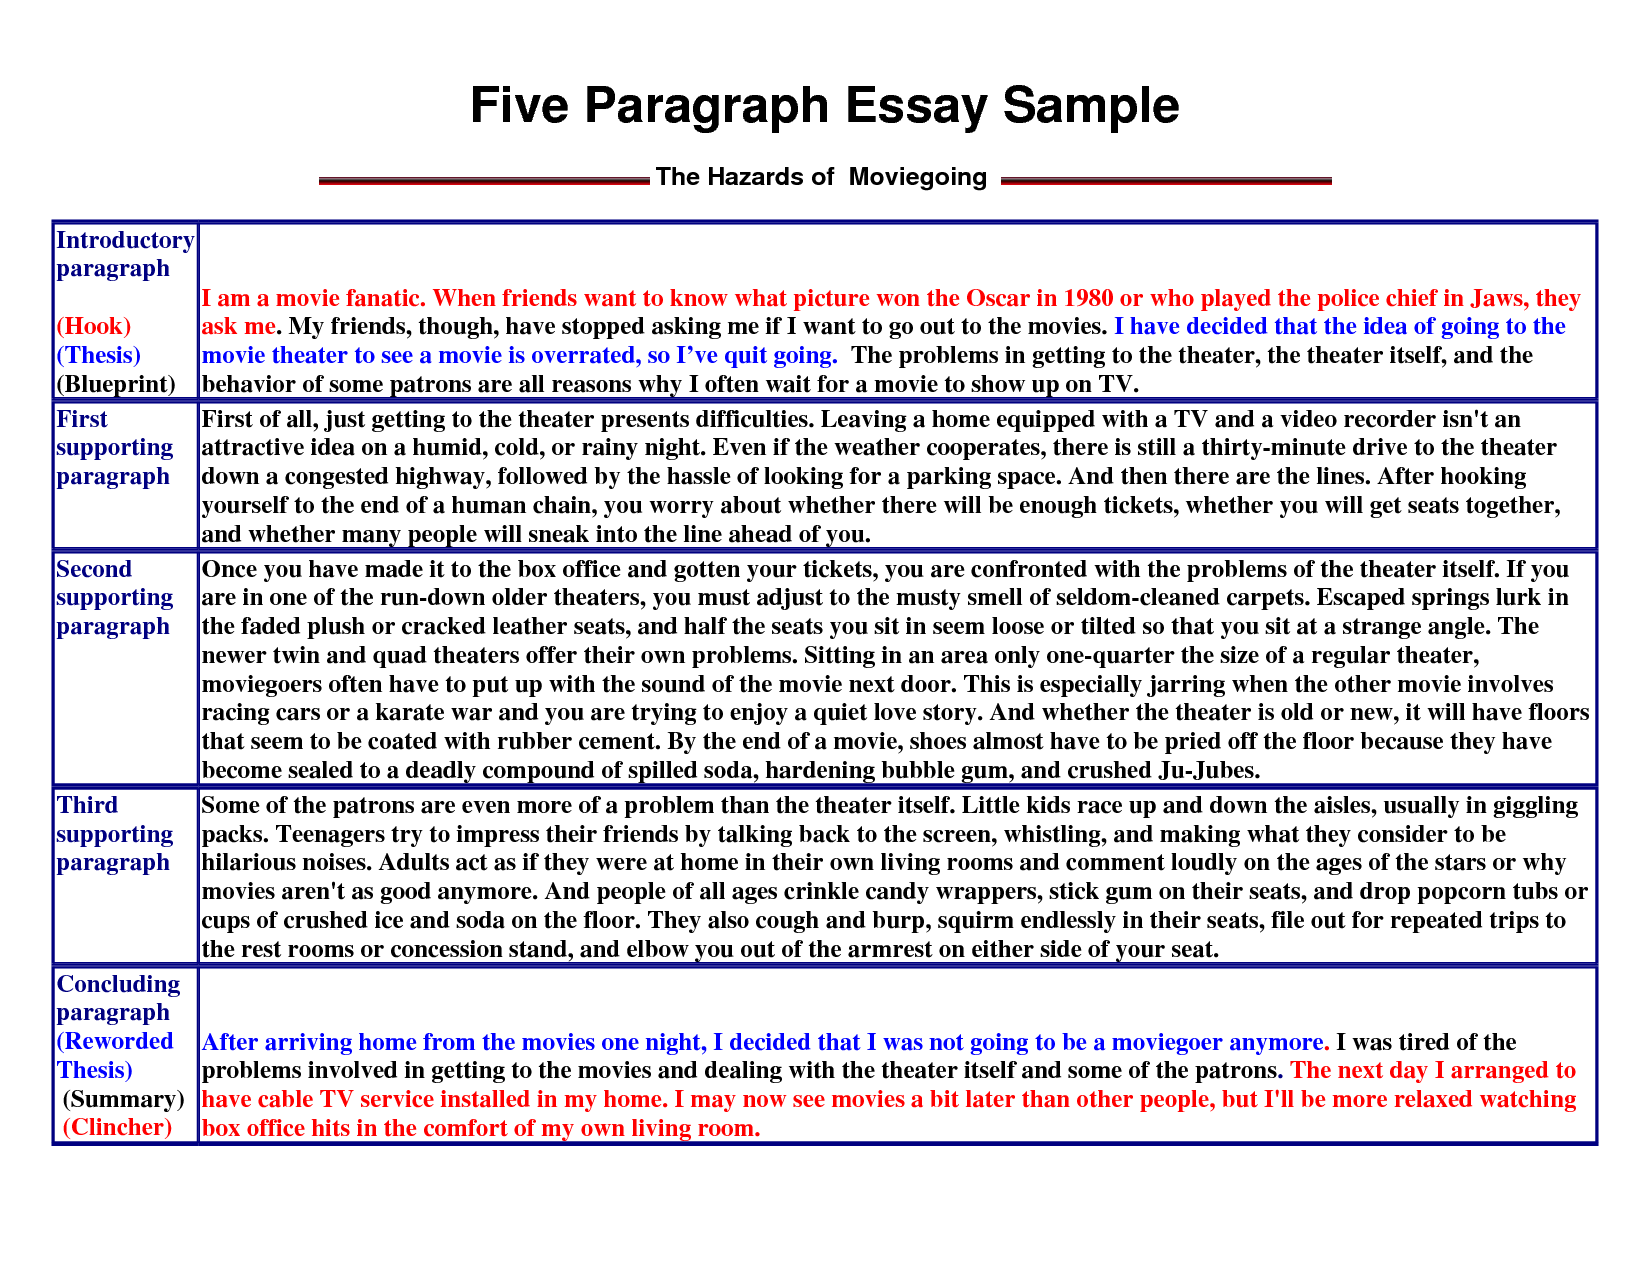 five paragraph essay broad structure 2 thesis statement 3 the history essay format 4 quotes, footnotes and bibliography 5 plagiarism 6 formatting requirements 7 basic essay conventions 8 use of capital letters typically, in a high school history essay, there will be as many supporting paragraphs as there are events or topics.